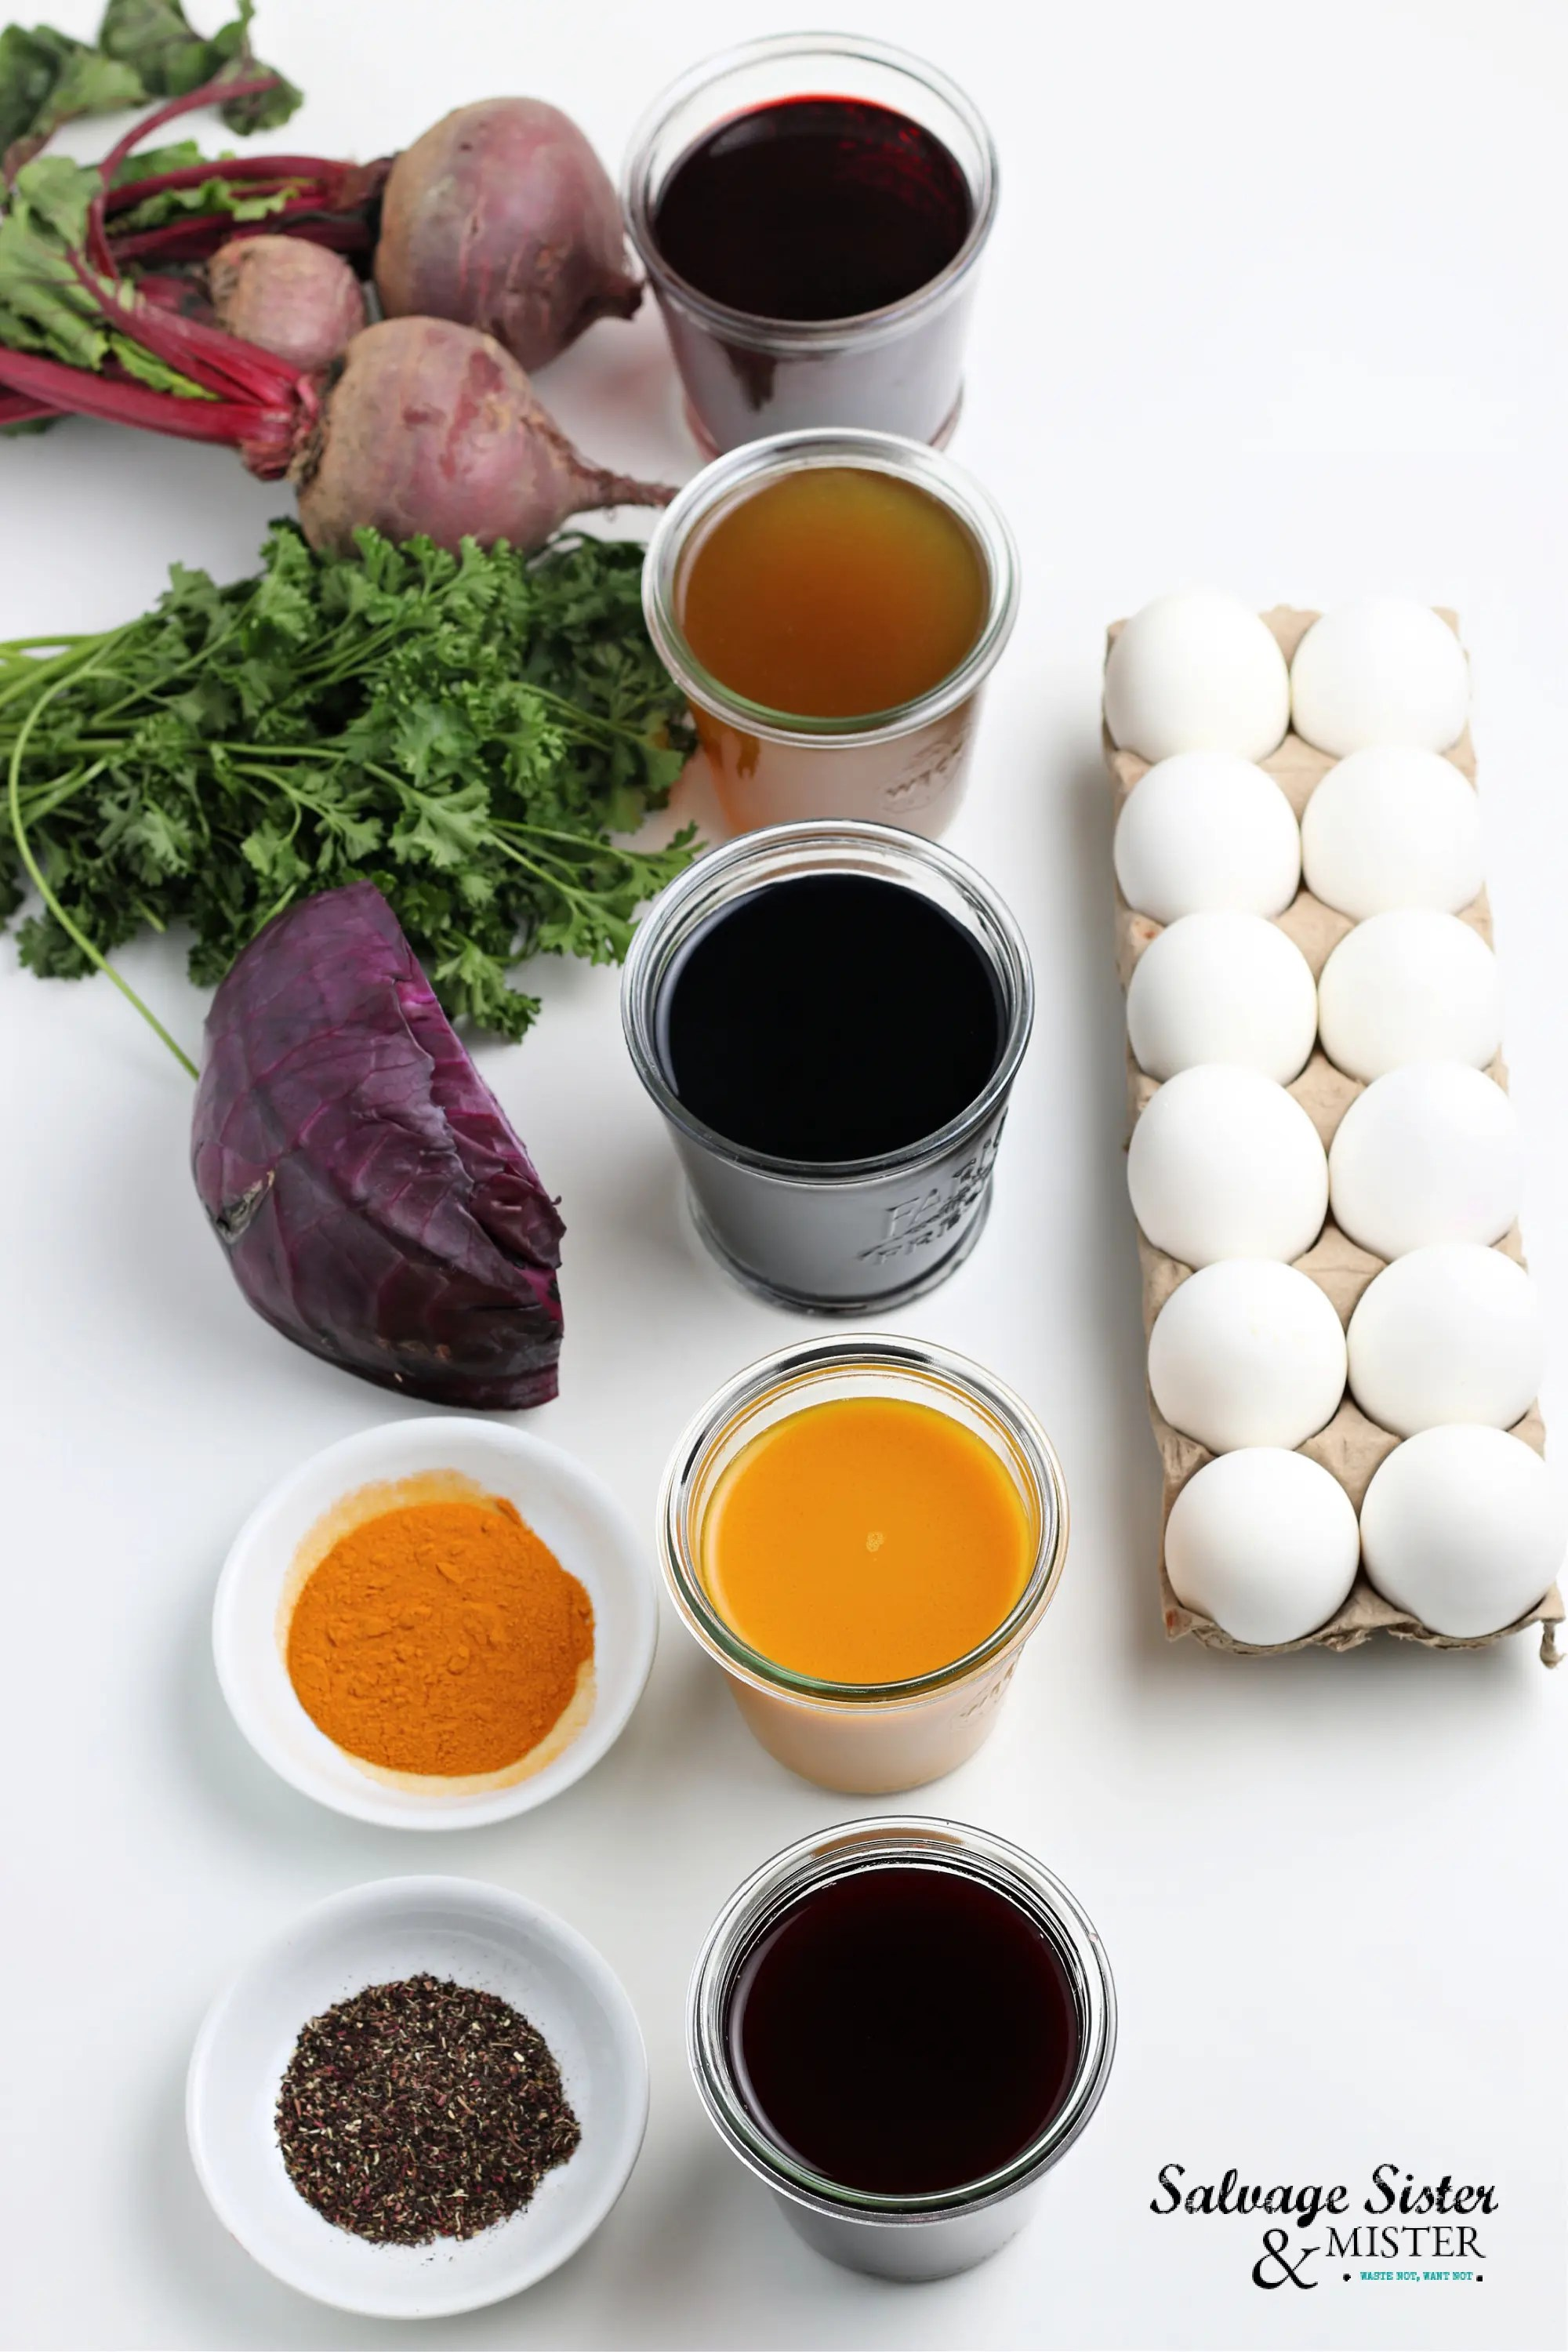 Vegetables like beets, parsley and red cabbage can be used to naturally color eggs for Easter. Spices and teas are also alternatives to chemical dyes used for coloring eggs.